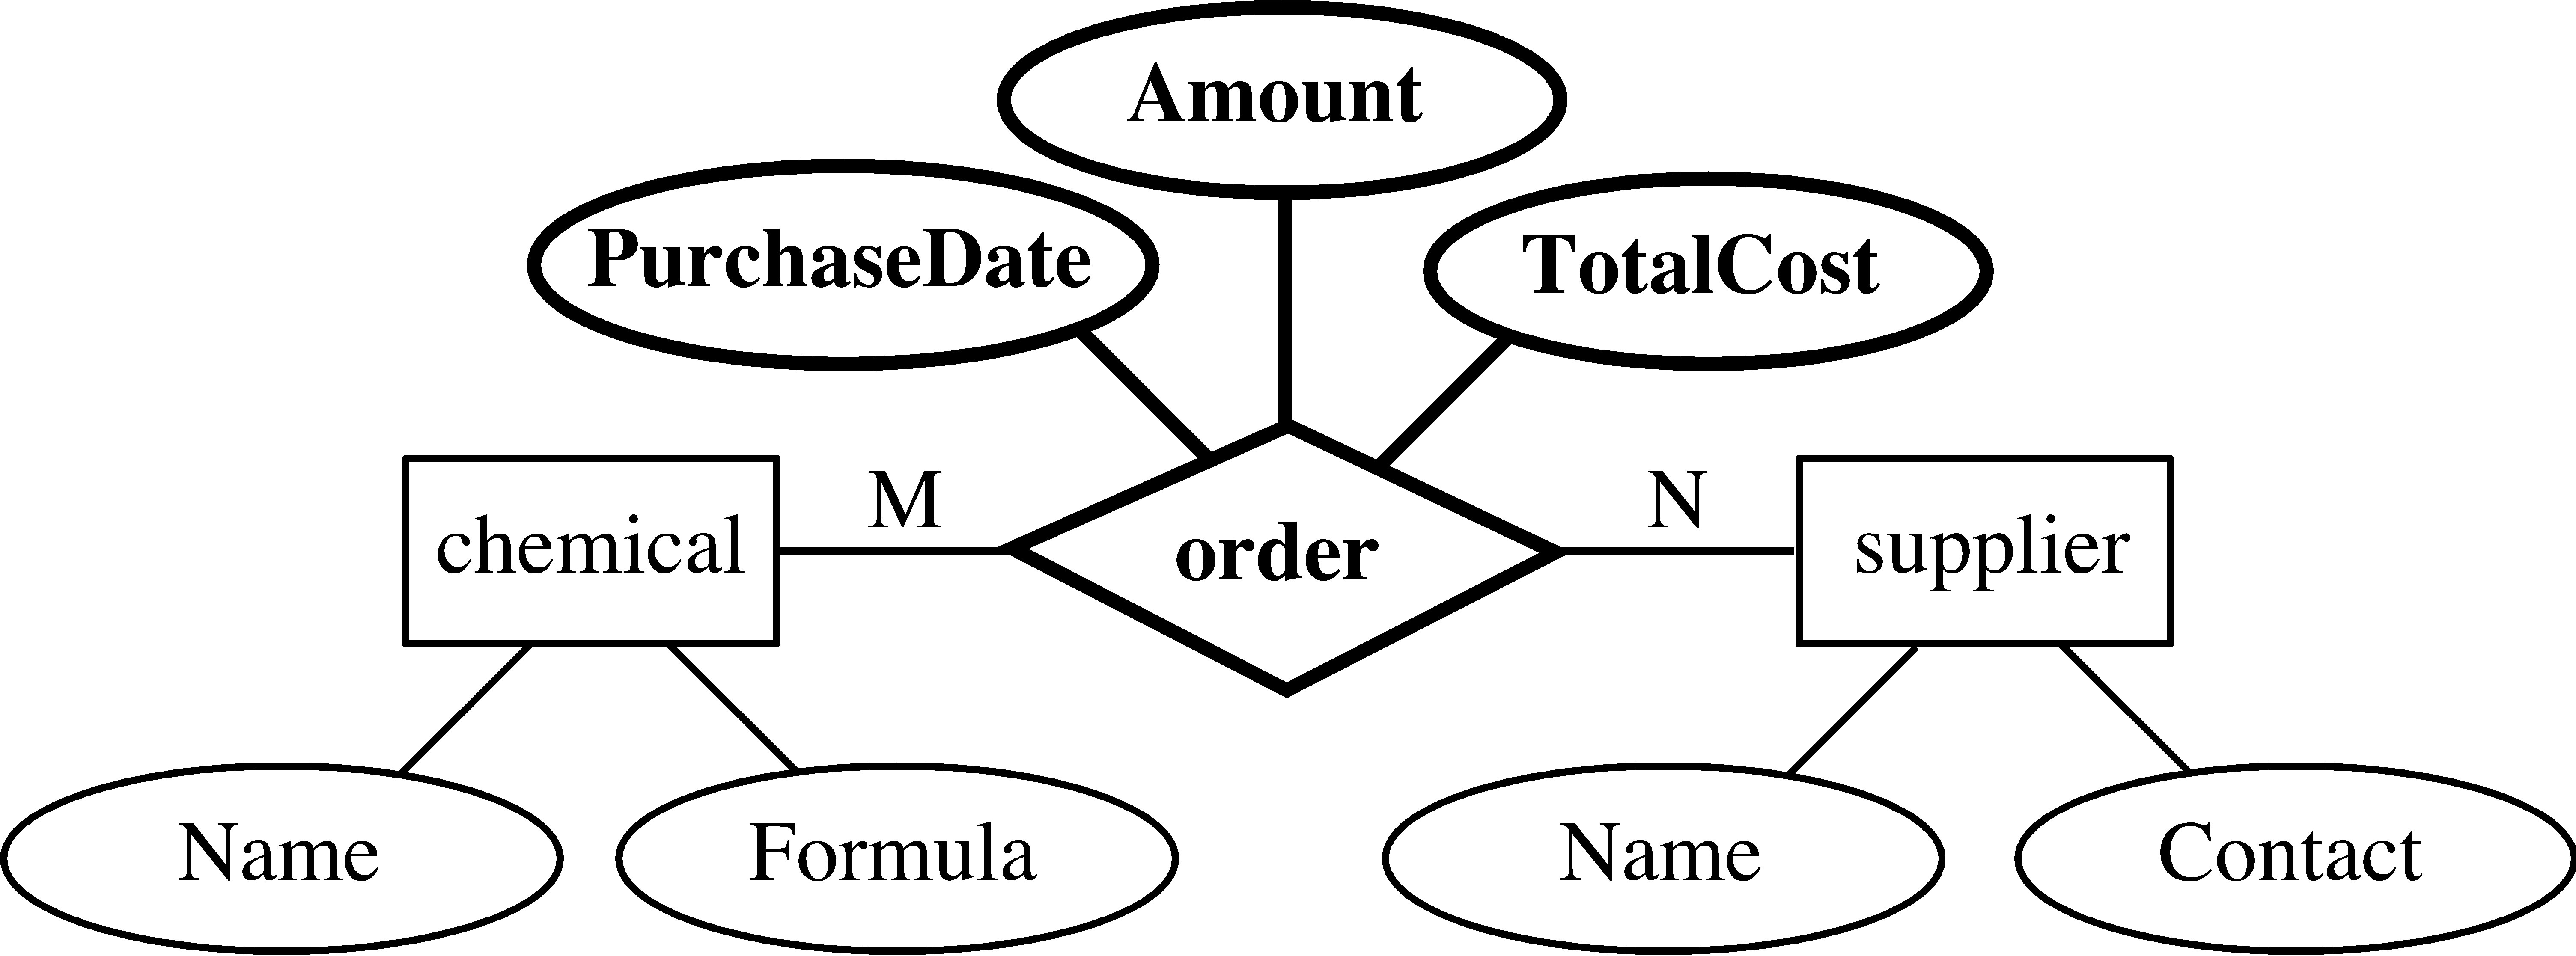 Entity-Relationship Model within Entity Relationship Model Examples